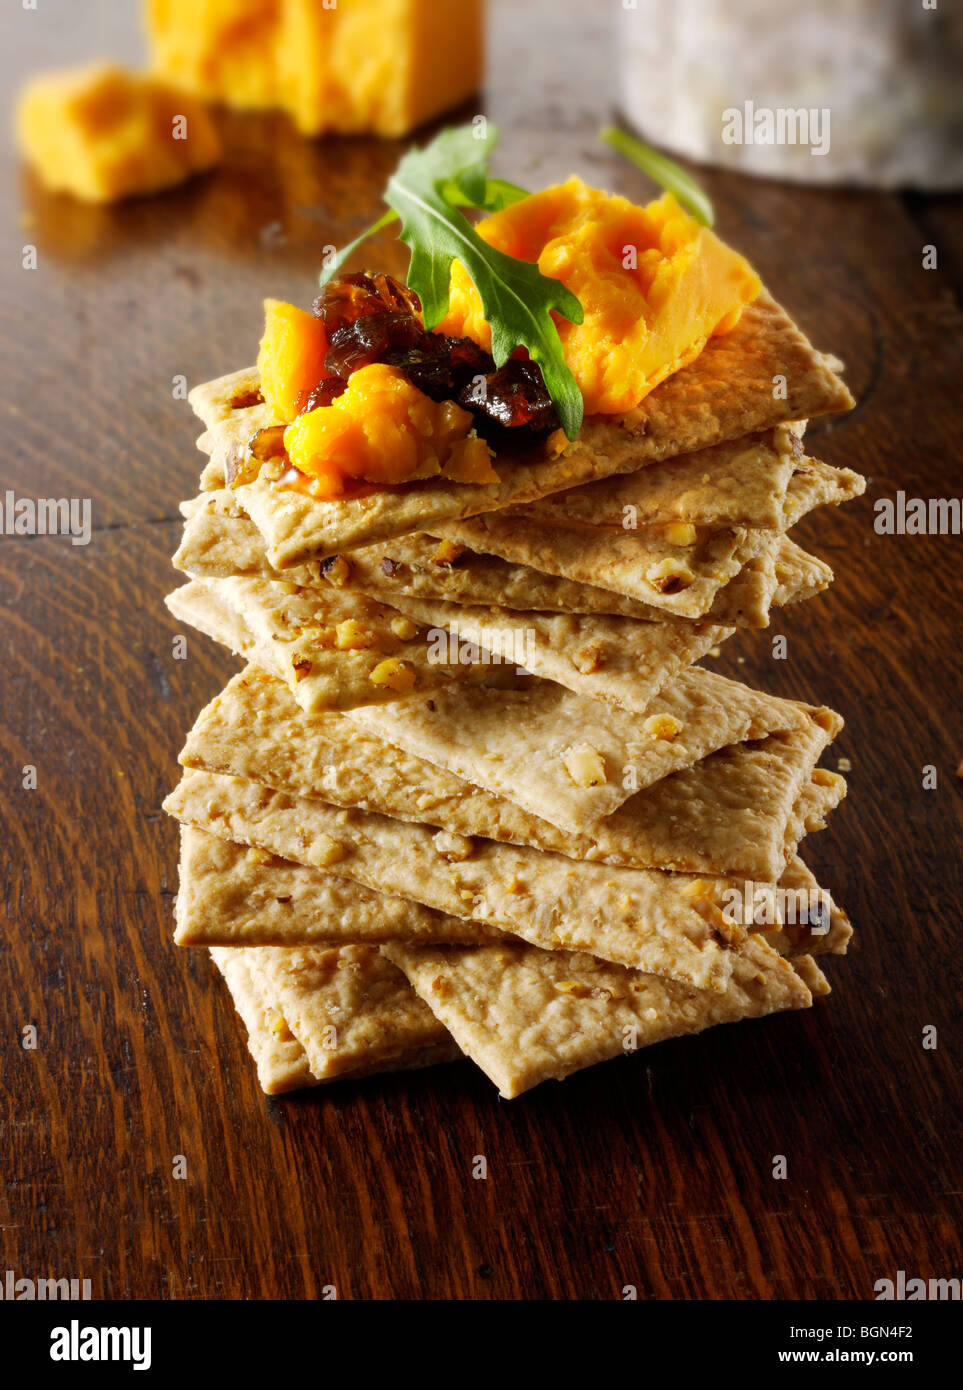 Cheese and biscuits with Red Leicester cheese - Stock Image